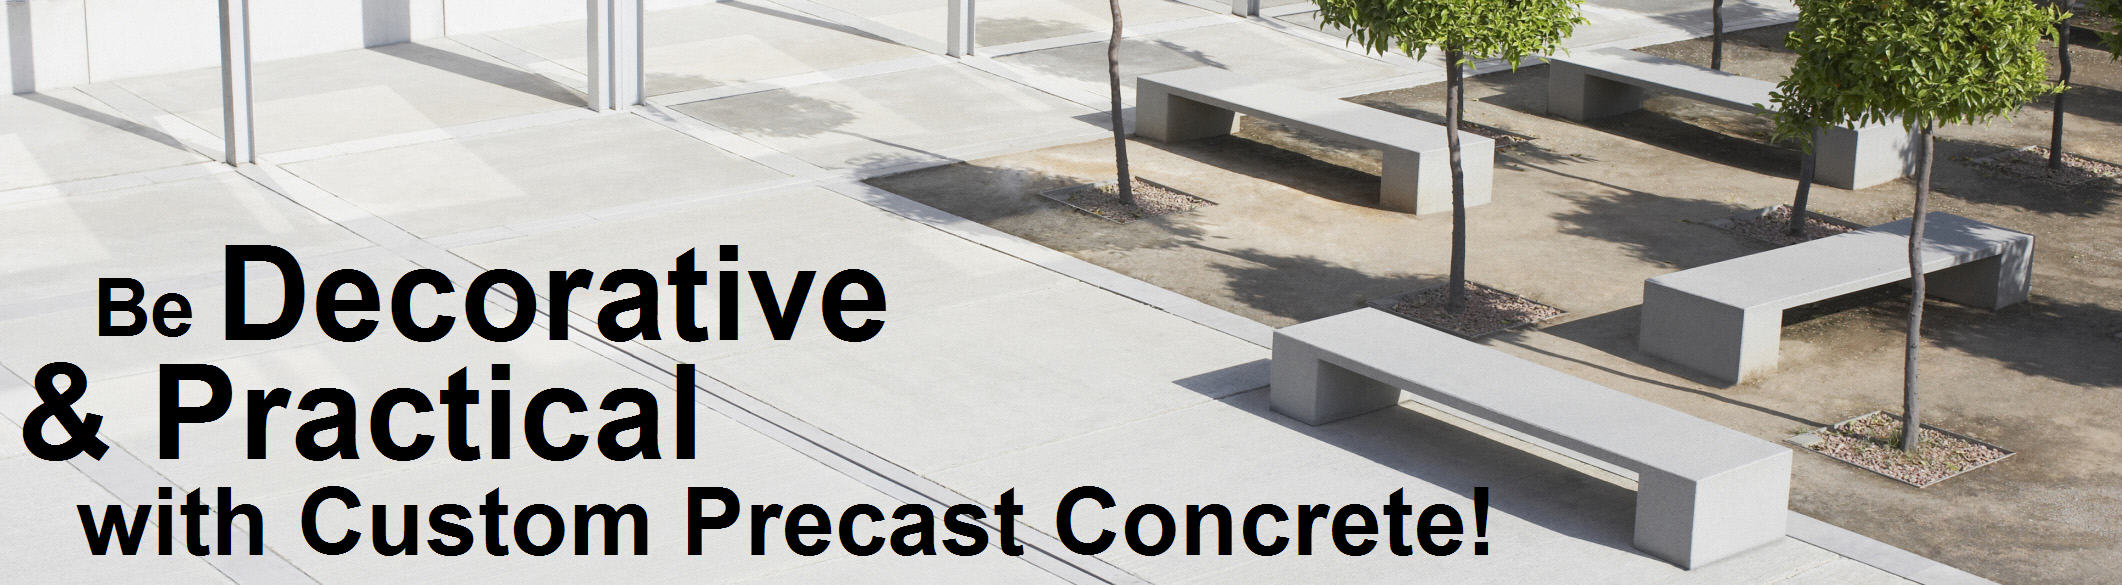 Be decorative & practical with custom precast concrete!